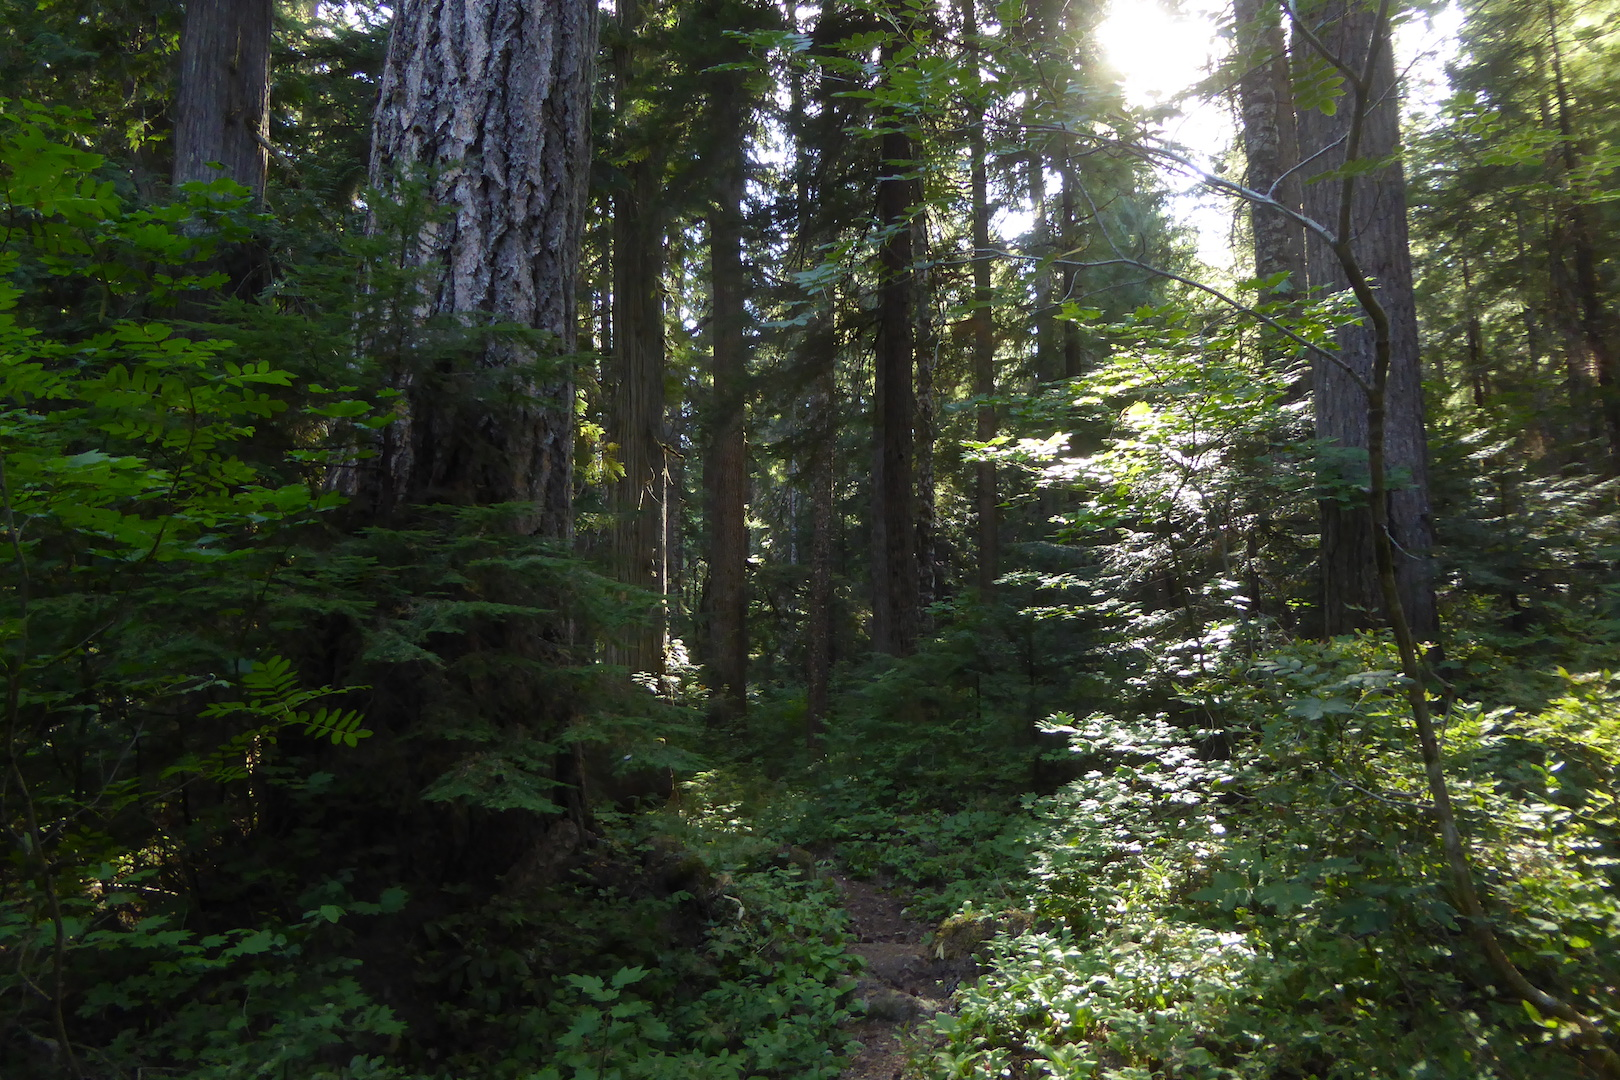 trail winding through dense forest with large trees